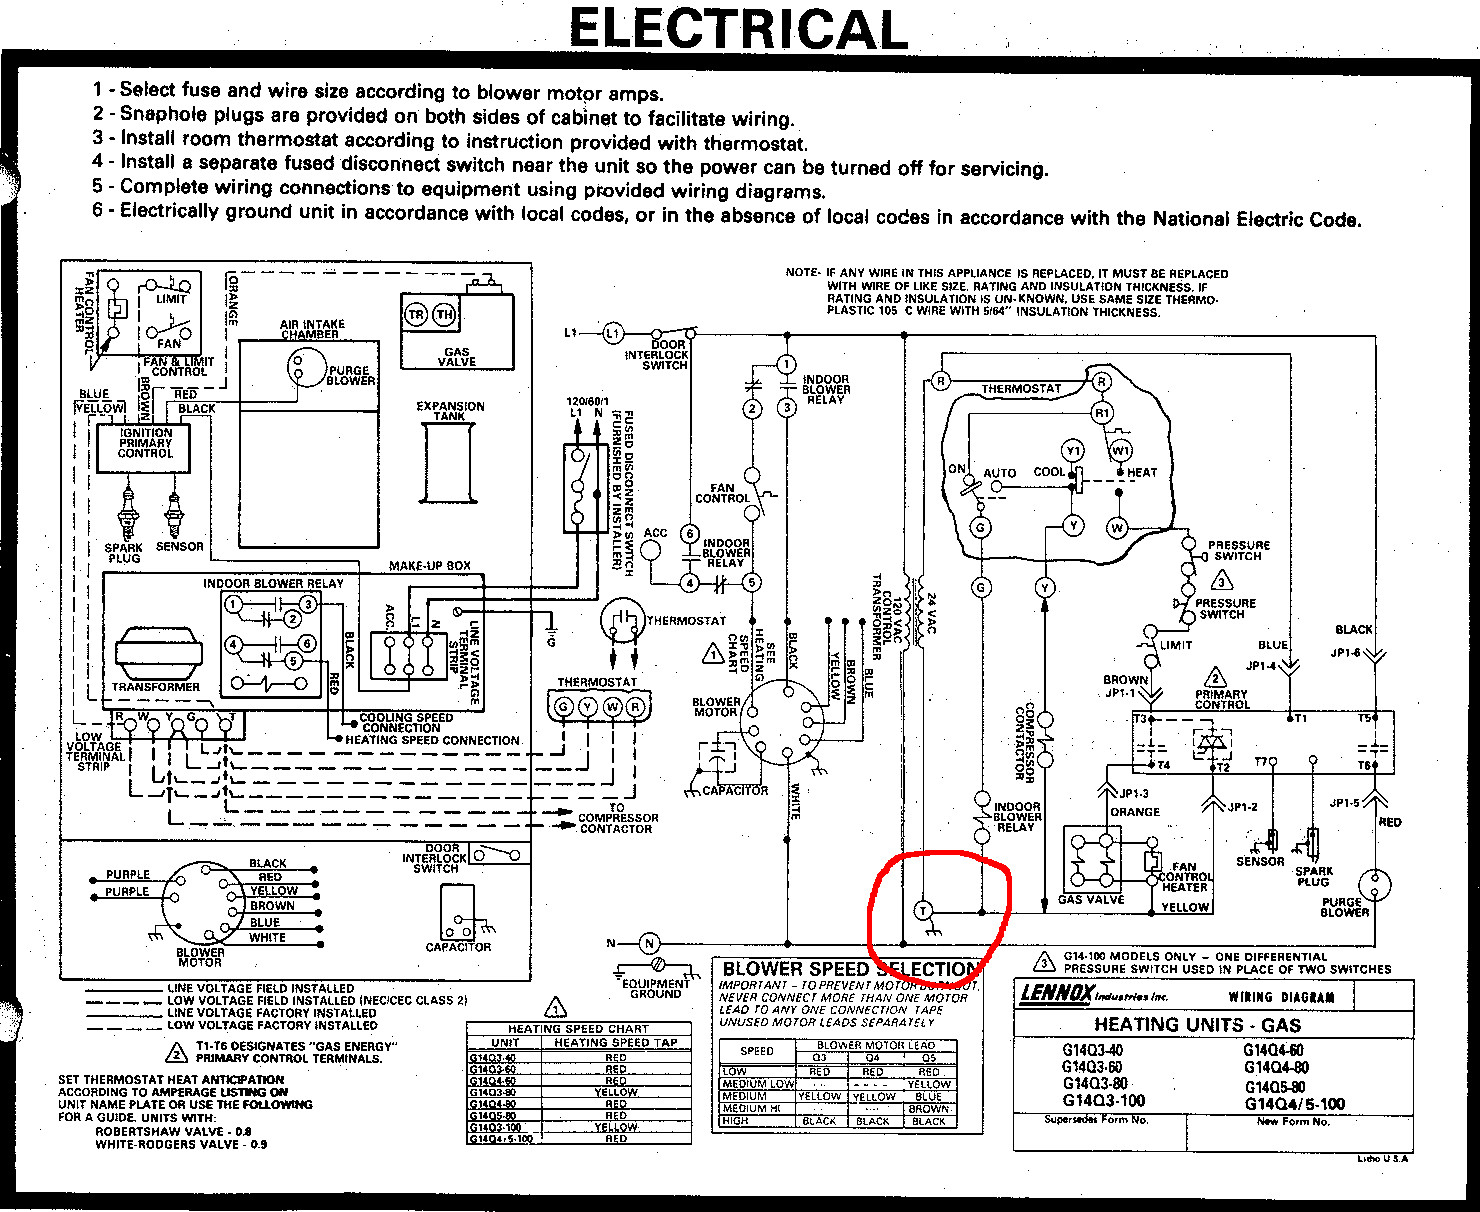 Furnace Wiring Diagram On White Rodgers Control Board Cnt3797 For Circuit 24a01g 3 Collection Rh Wholefoodsonabudget Com